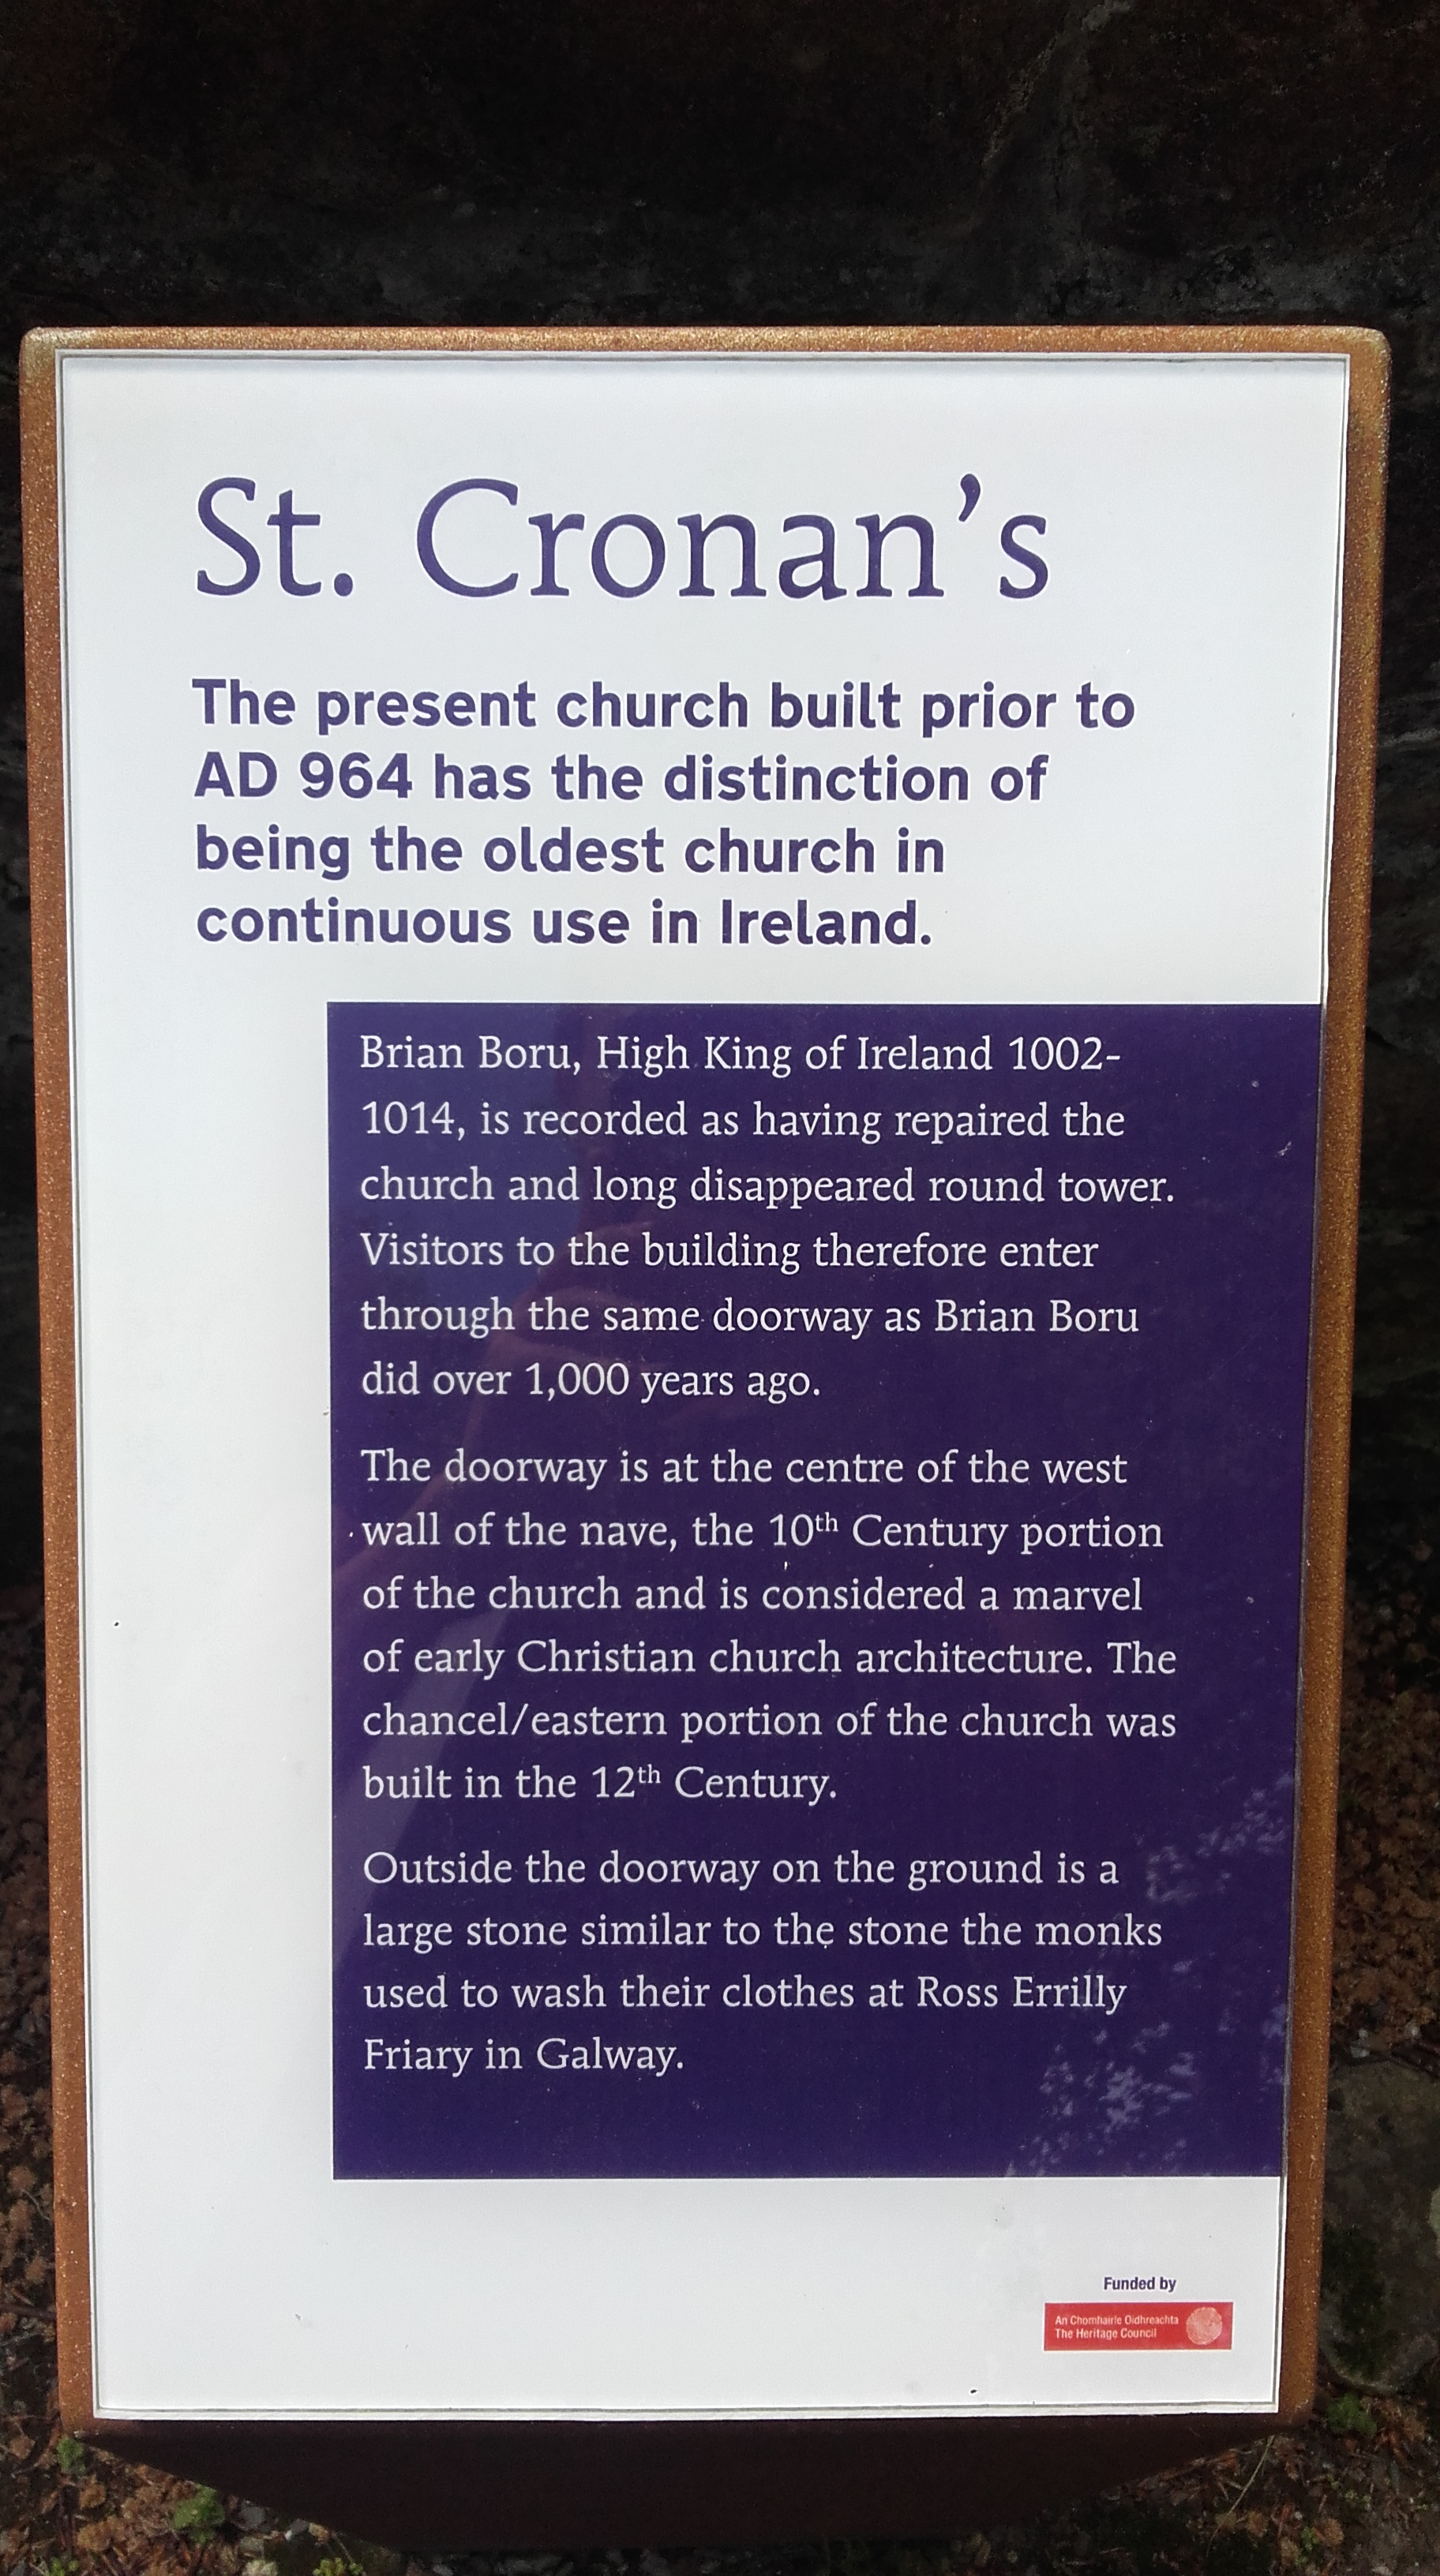 St. Cronan's church was built in 964 AD and is the oldest church in continuous use in Ireland. Brian Boru himself passed through its doors over 1000 years ago.